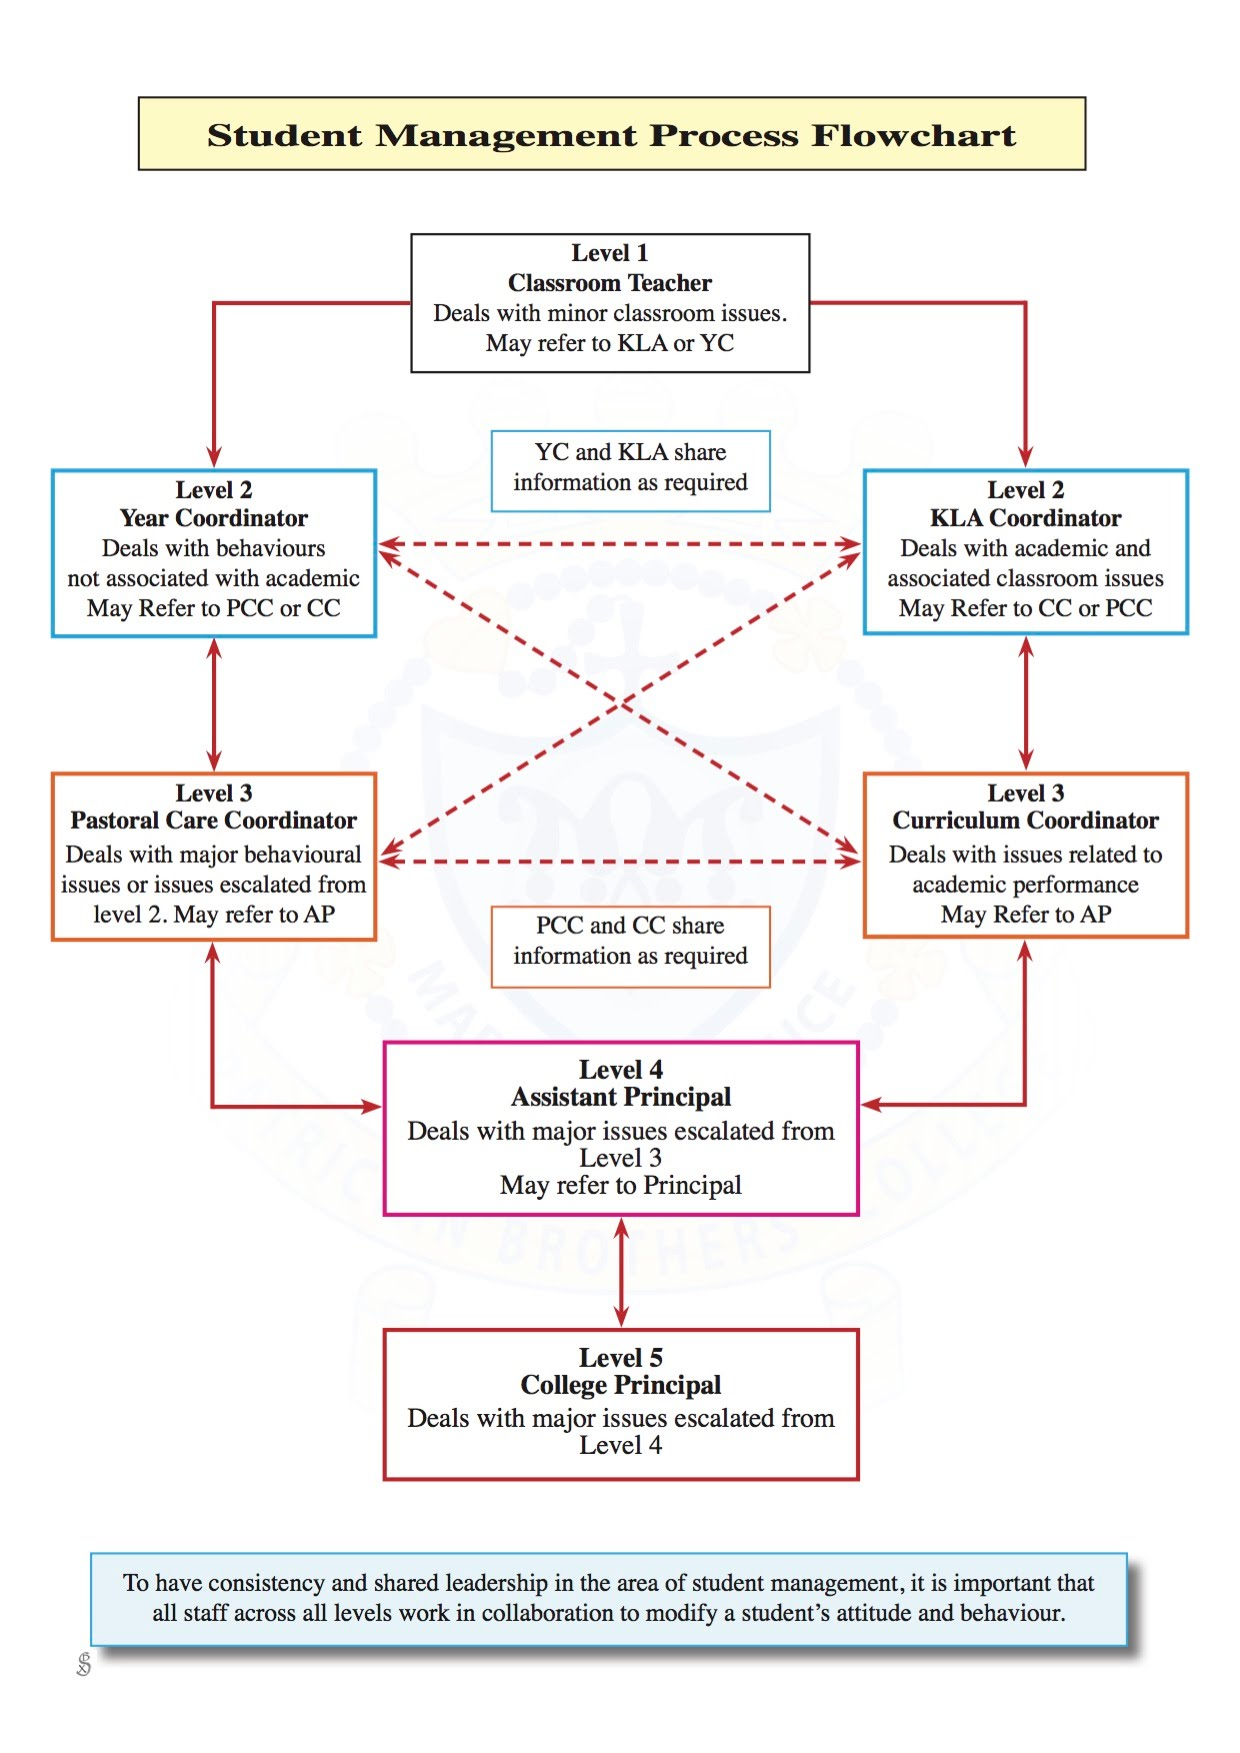 Student management process flowchart patrician brothers college student management process flowchart patrician brothers college fairfield nvjuhfo Gallery